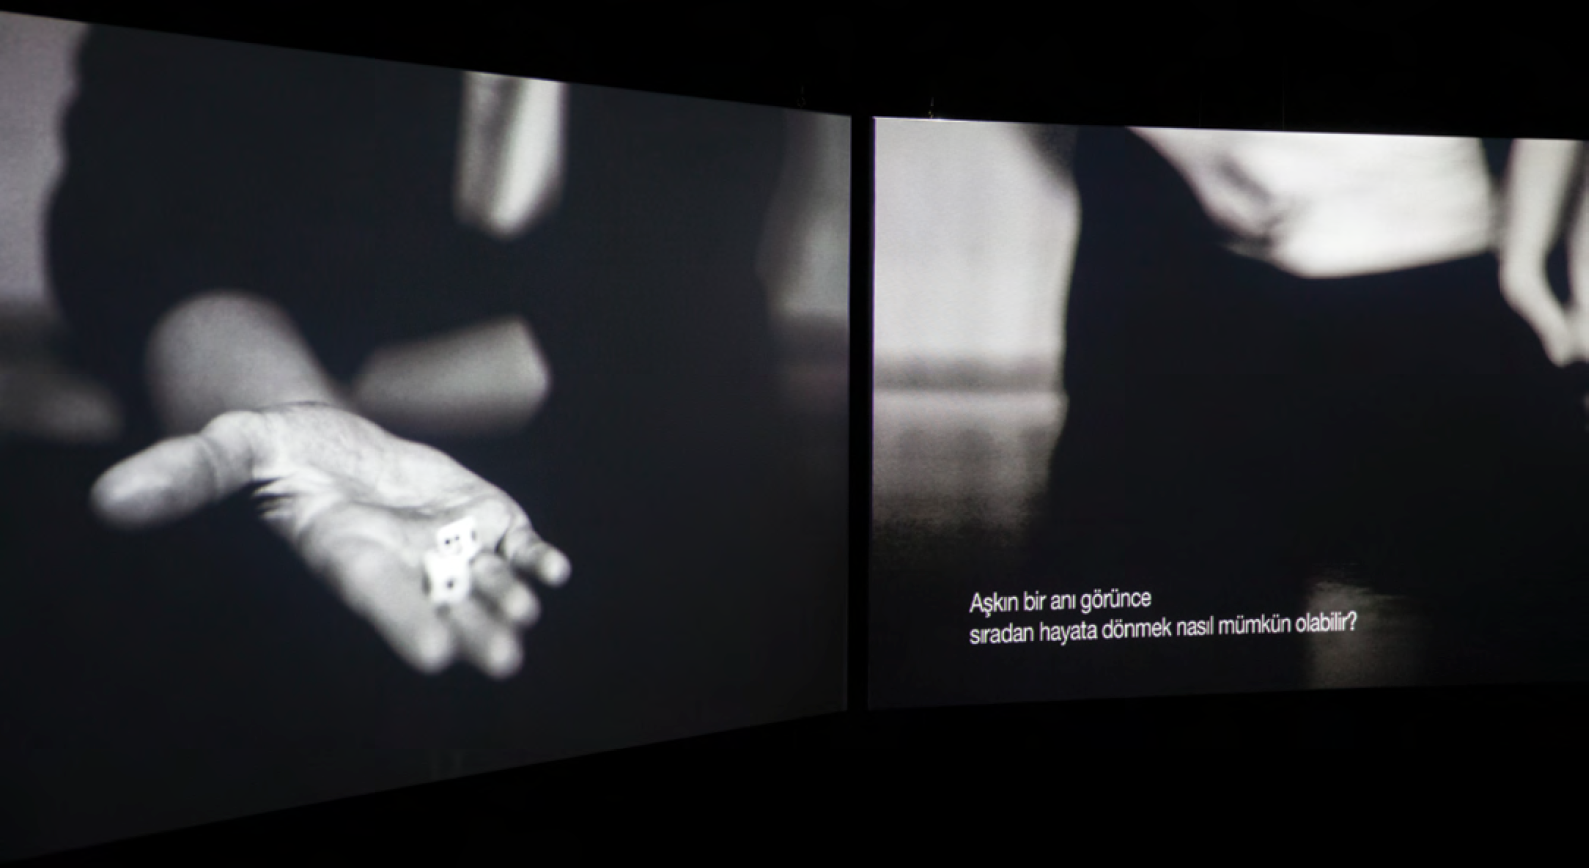 Didem Pekün, Of Dice and Men, 2011. Video Loop, 29 minutes. Courtesy of SALT and the artist. Photography by Baris Dogrusoz.